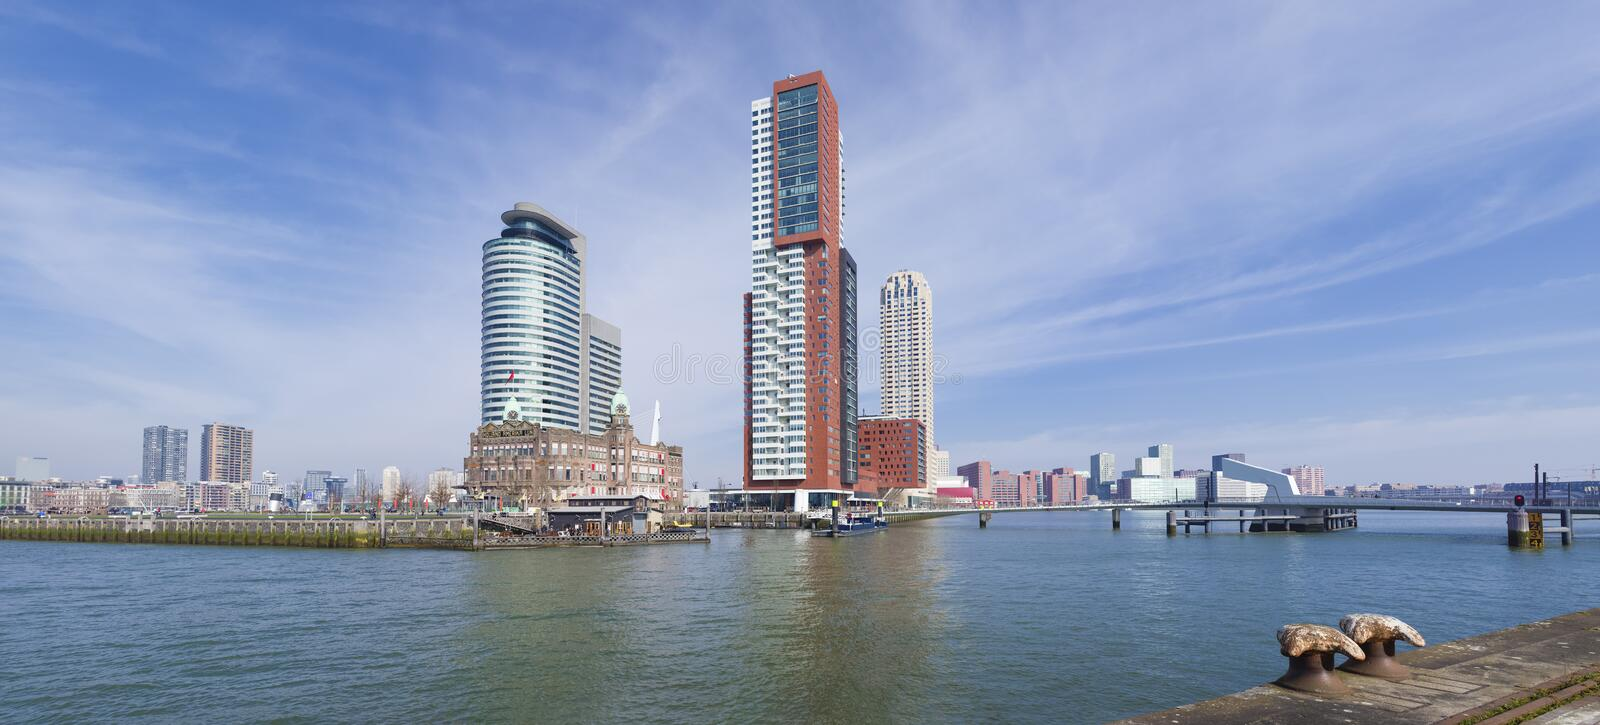 Horizon de Rotterdam images stock